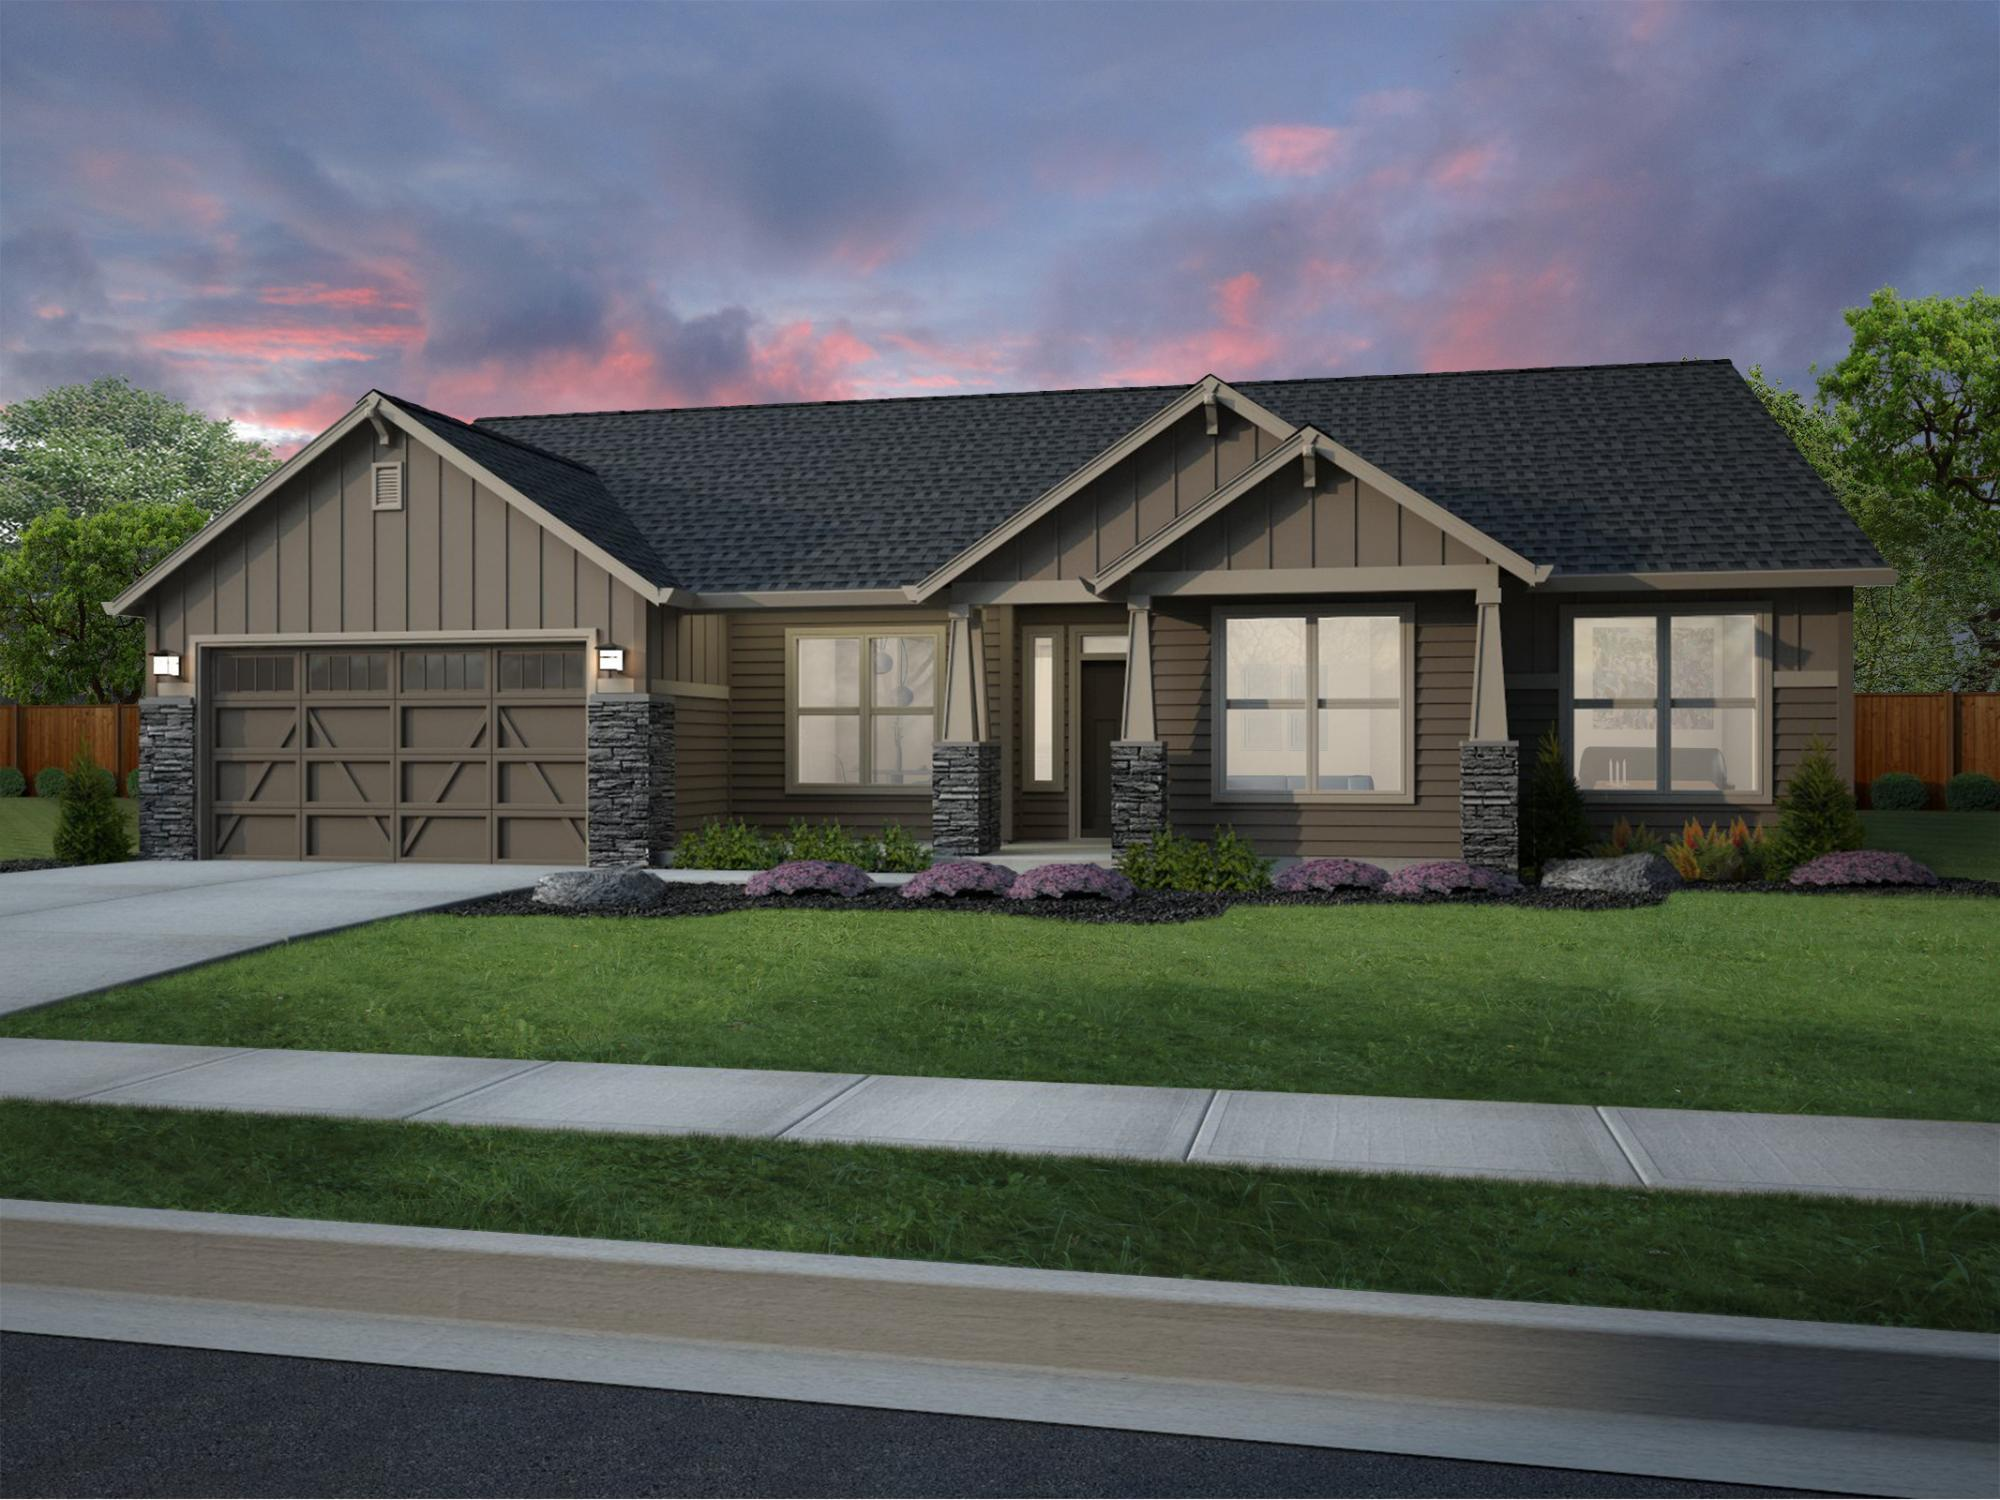 Single Family for Sale at Columbia Terrace - Fircrest 2 9911 Silverbright Drive Pasco, Washington 99301 United States